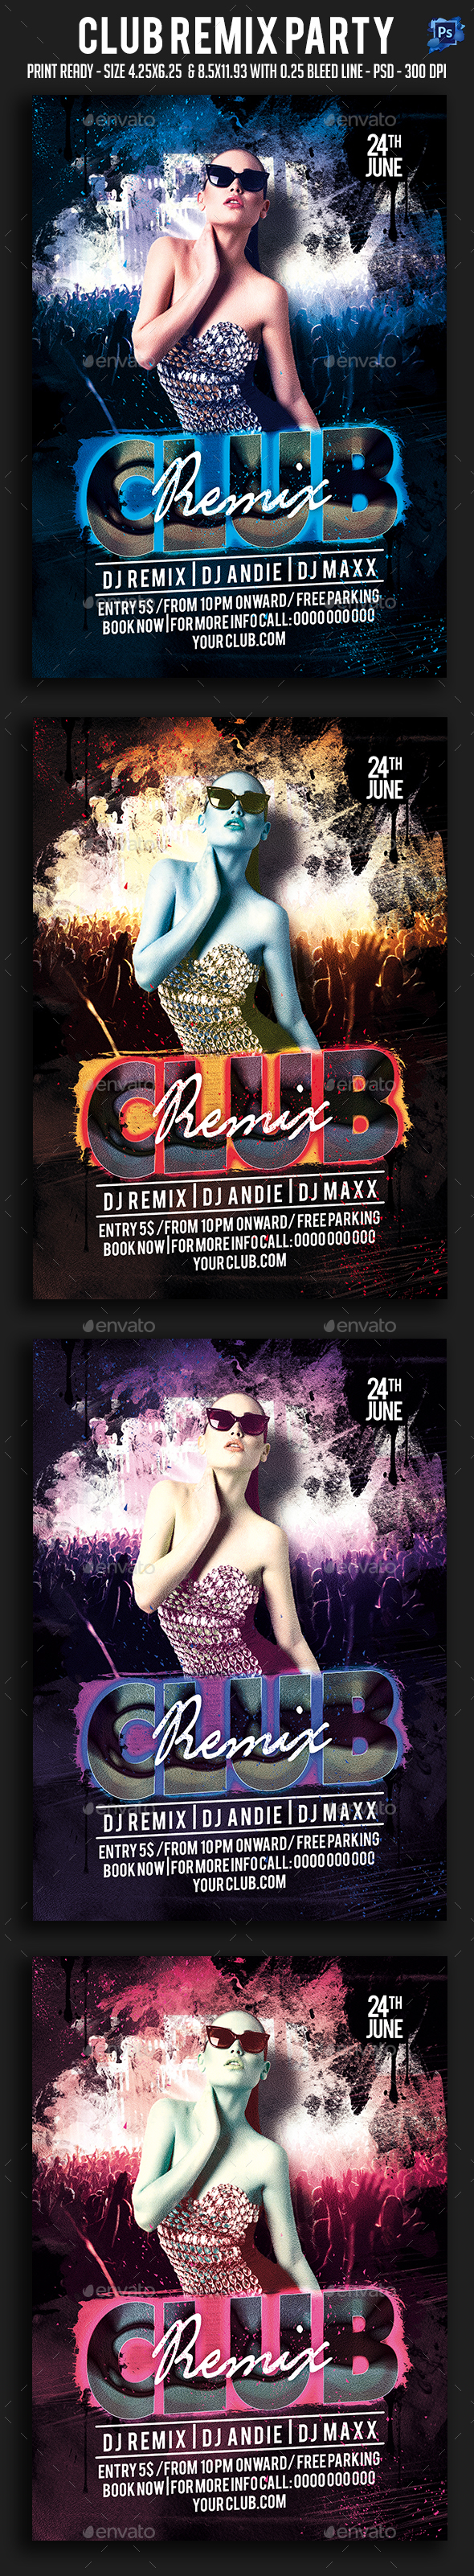 Club Remix Party Flyer - Clubs & Parties Events